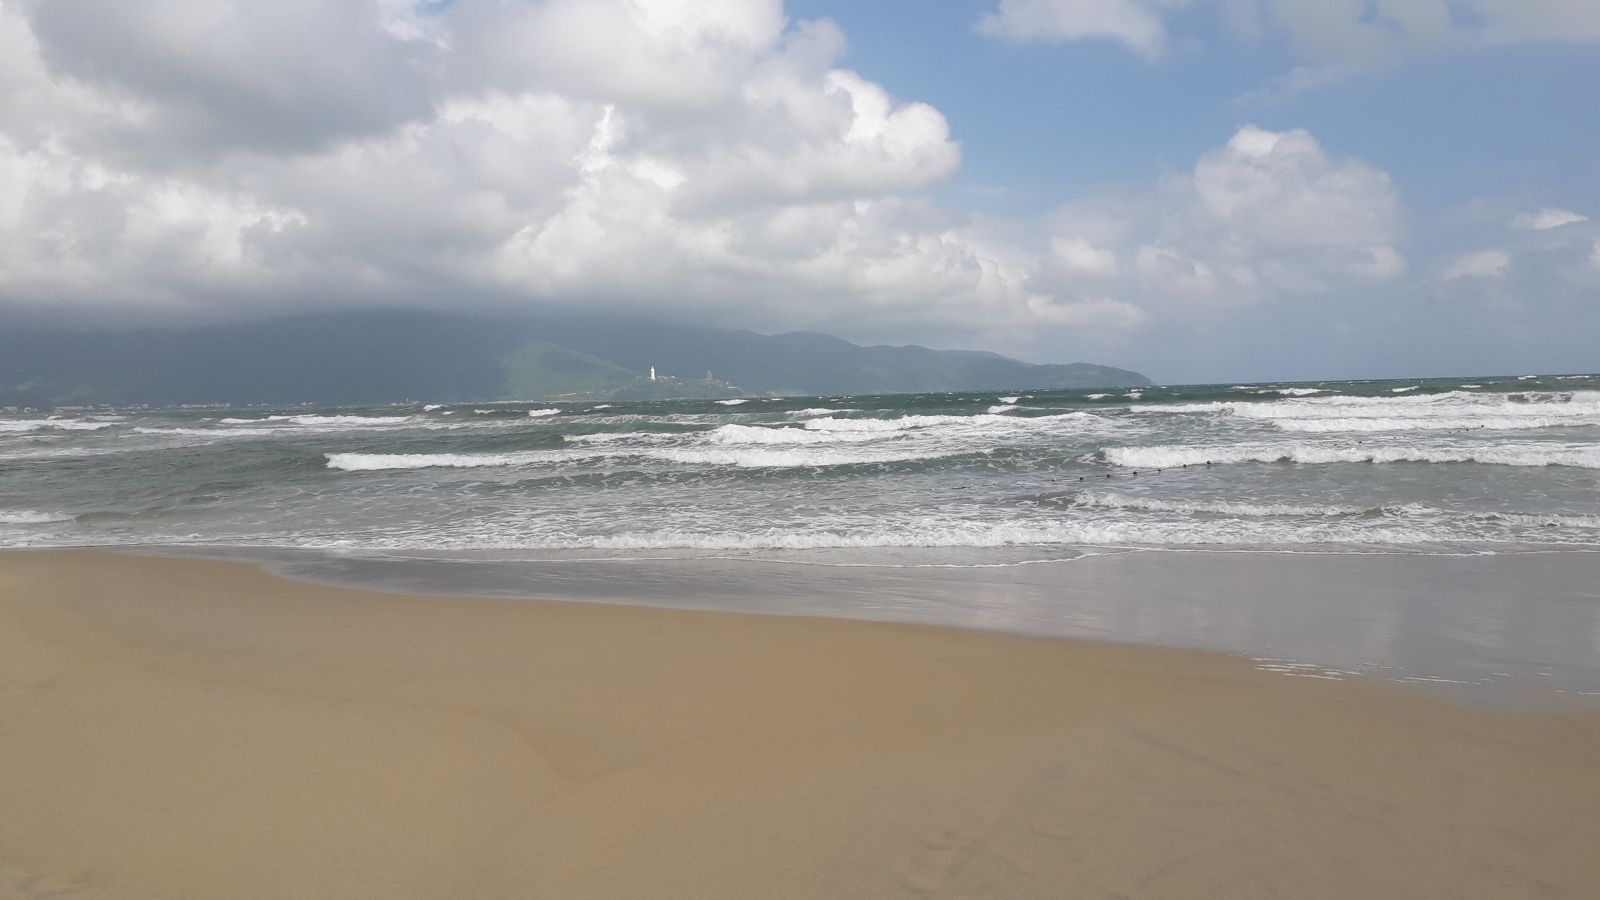 May Khe beach- Da Nang city